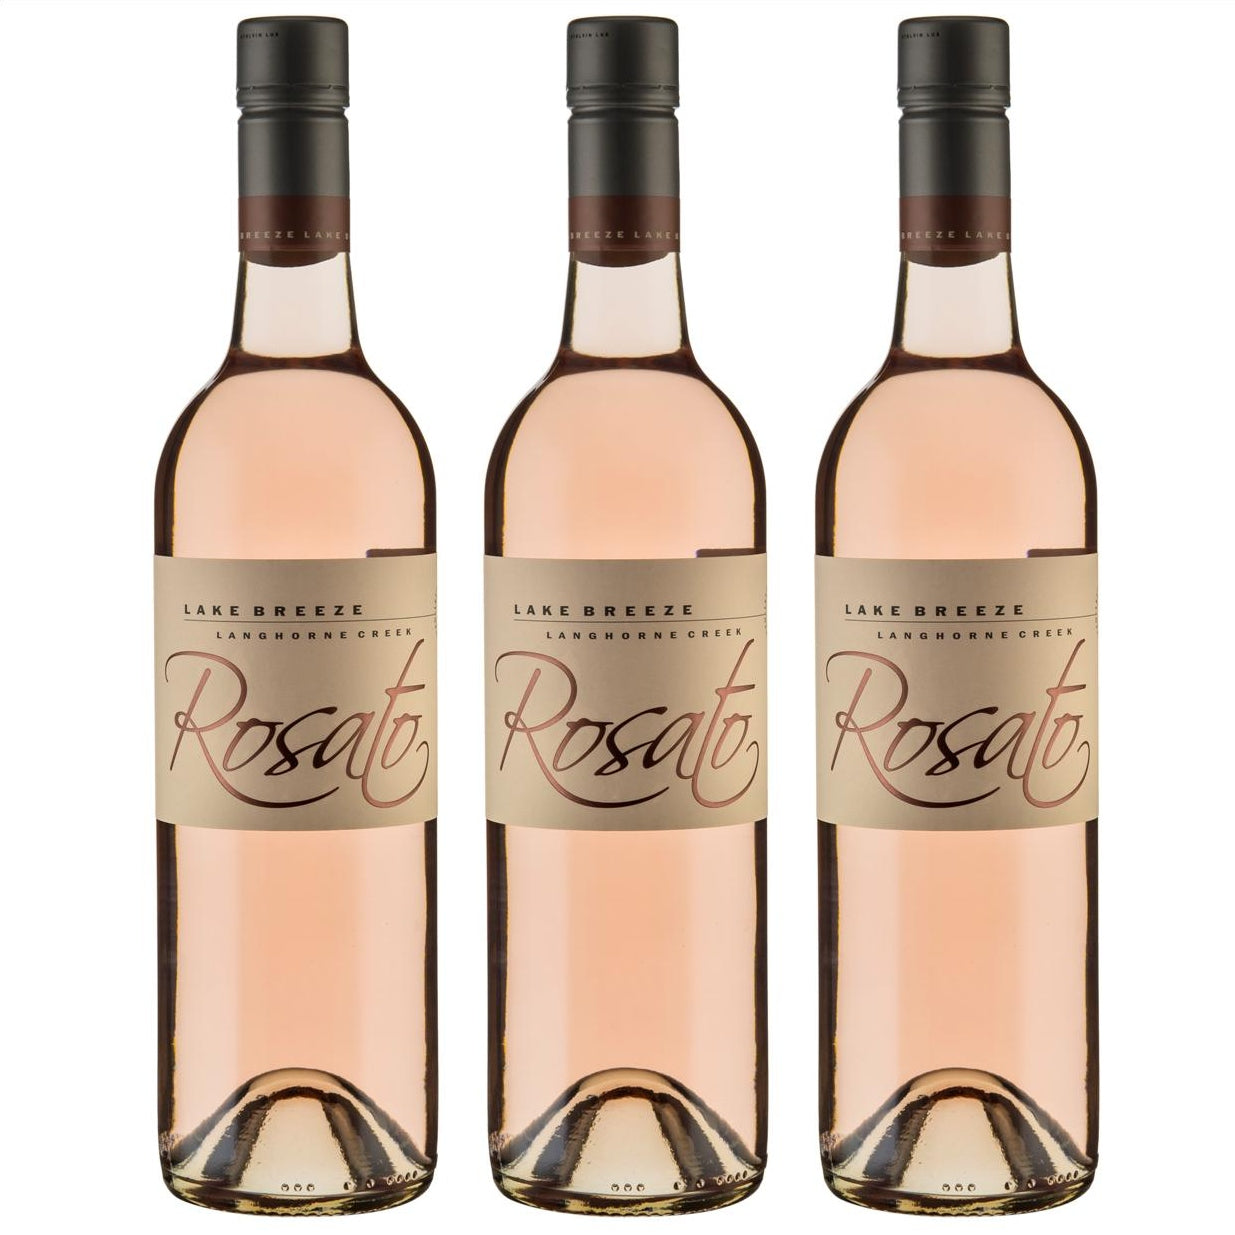 Lake Breeze Rosato